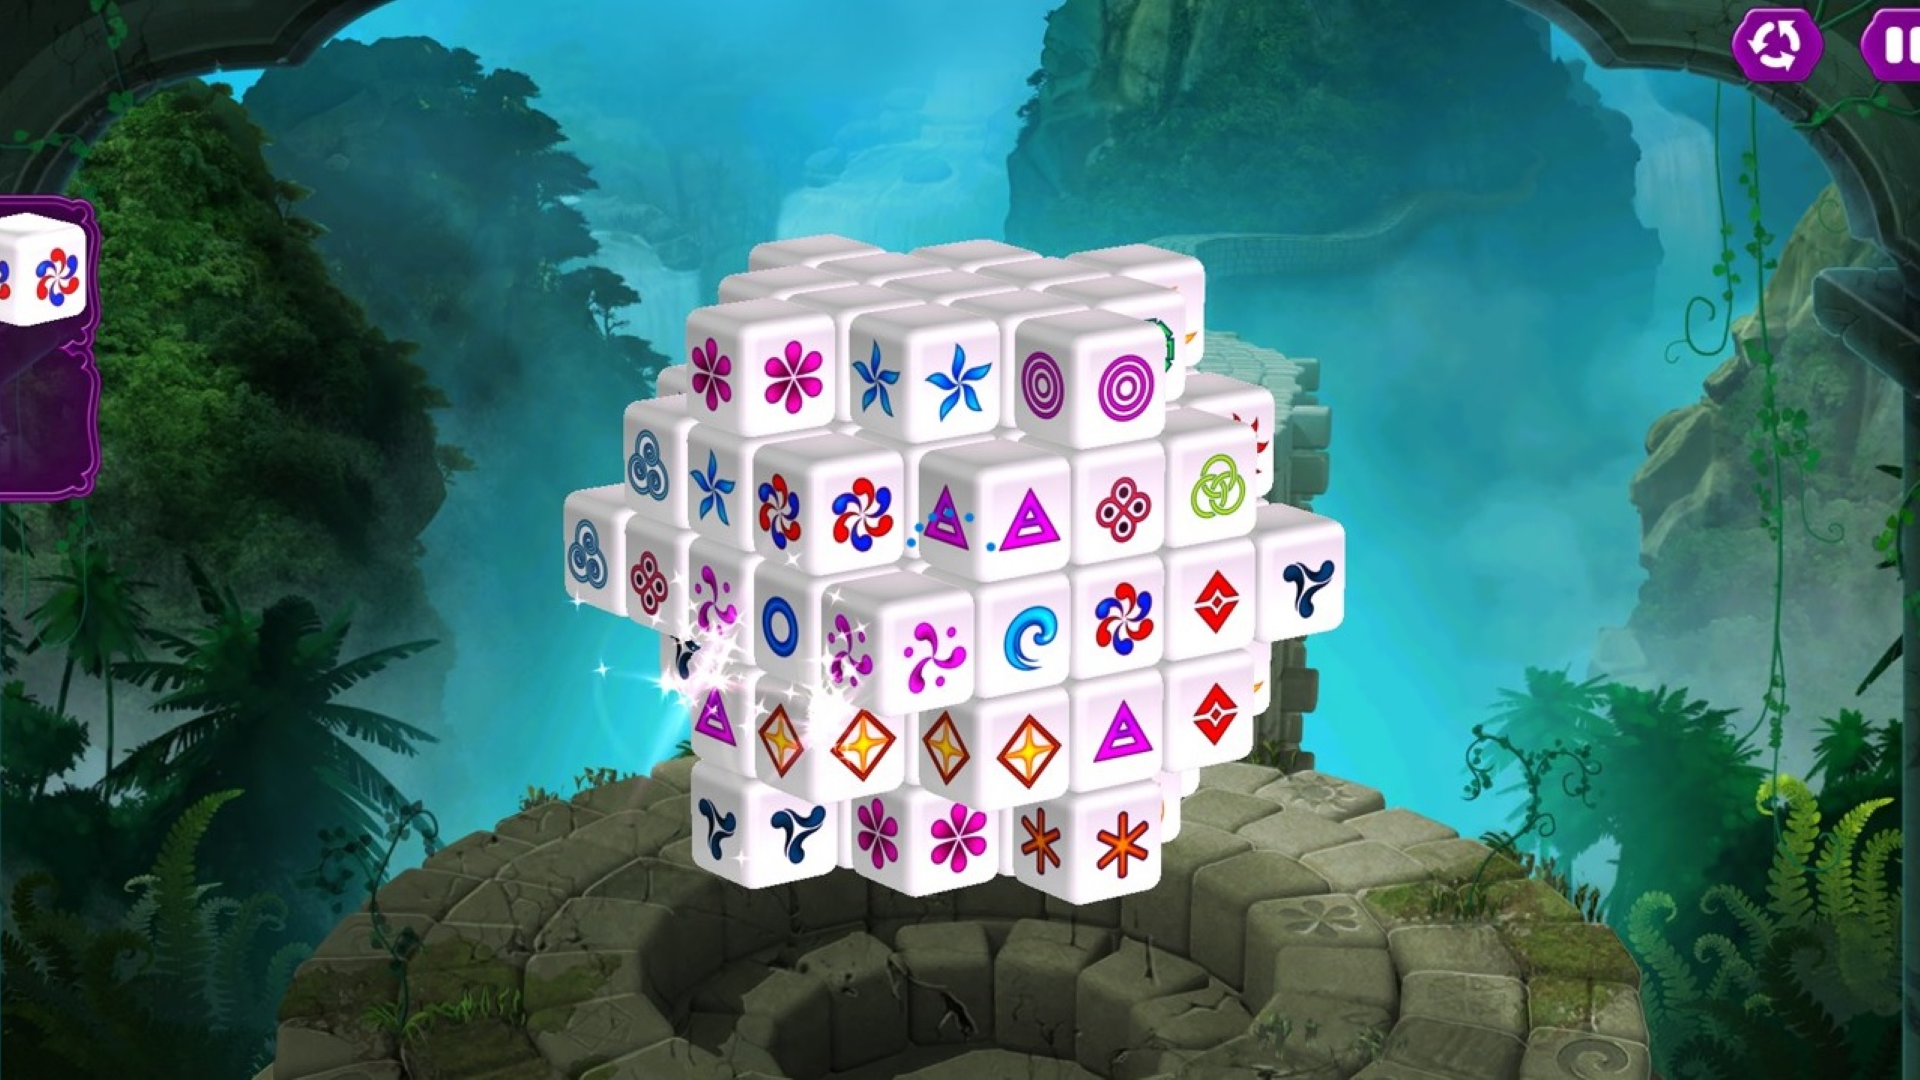 Microsoft presents 10 free toprated games Cube games